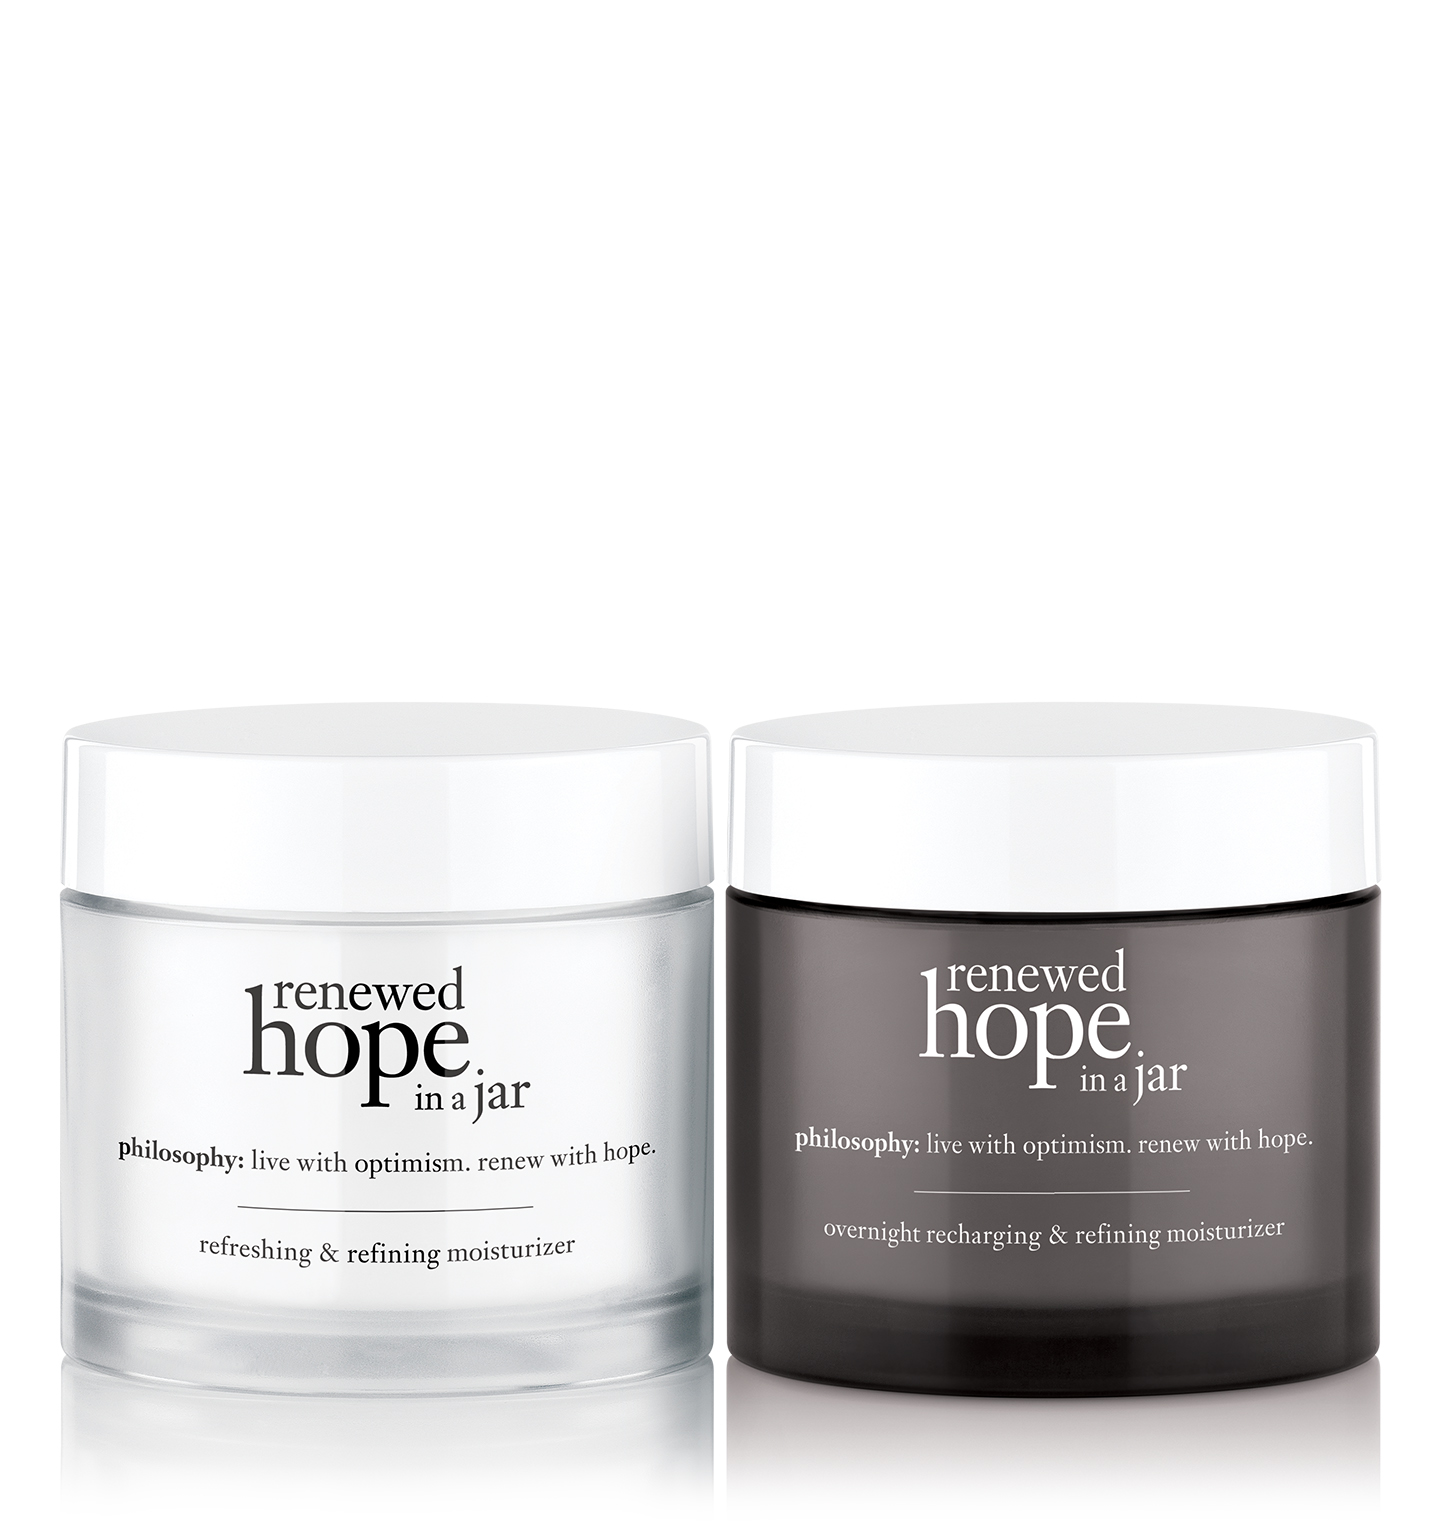 renewed hope in a jar day & night moisturizer duo